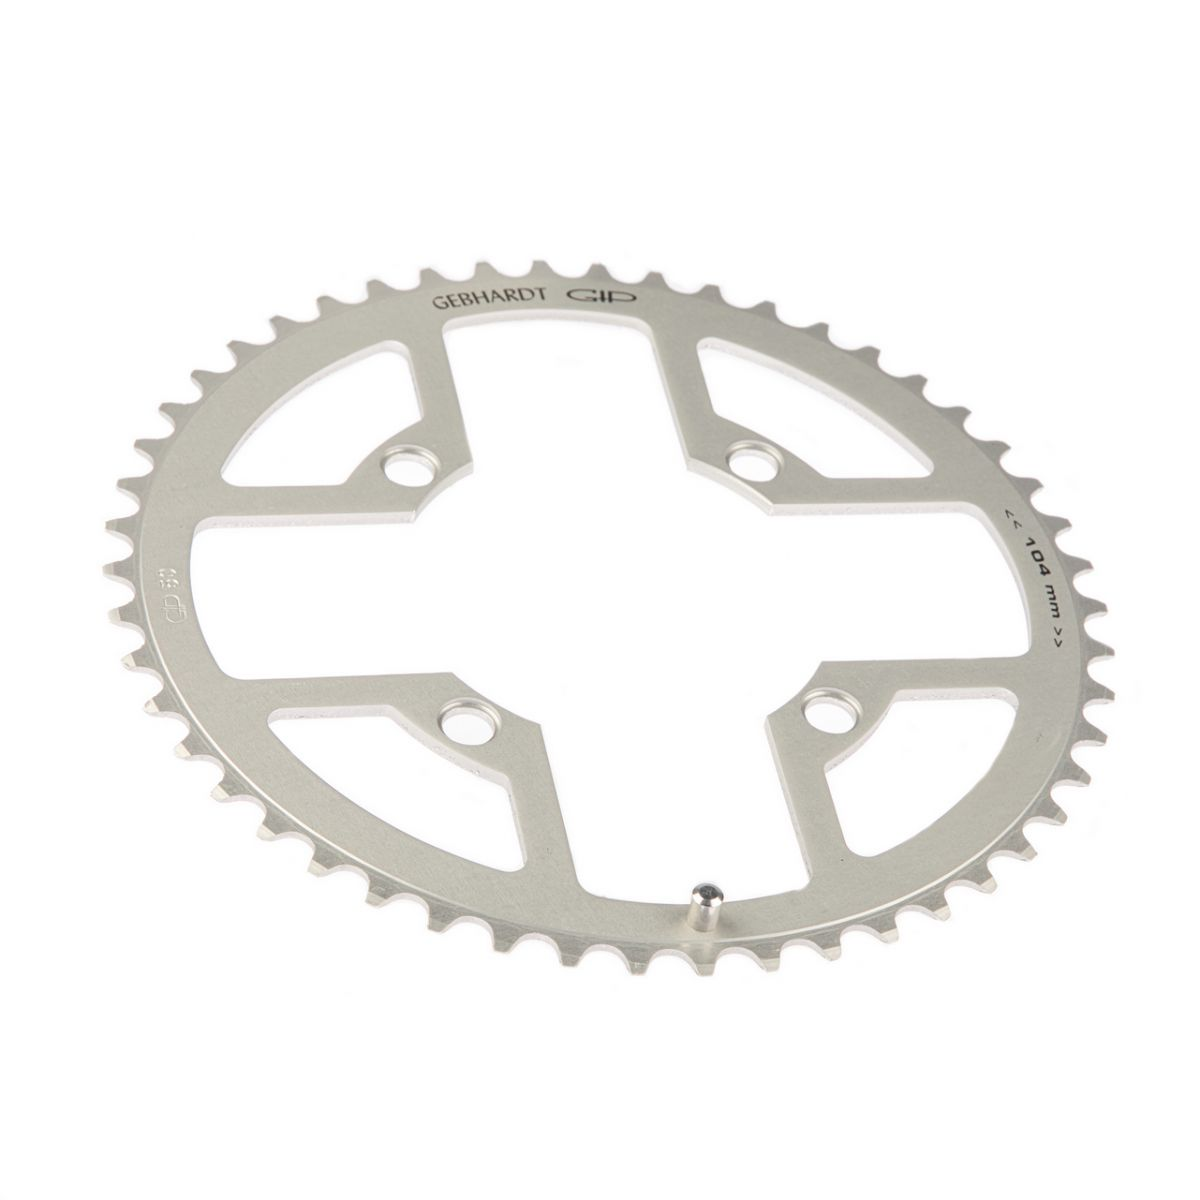 gebhardt chainring classic bcd 104 mm 4hole 46t silver